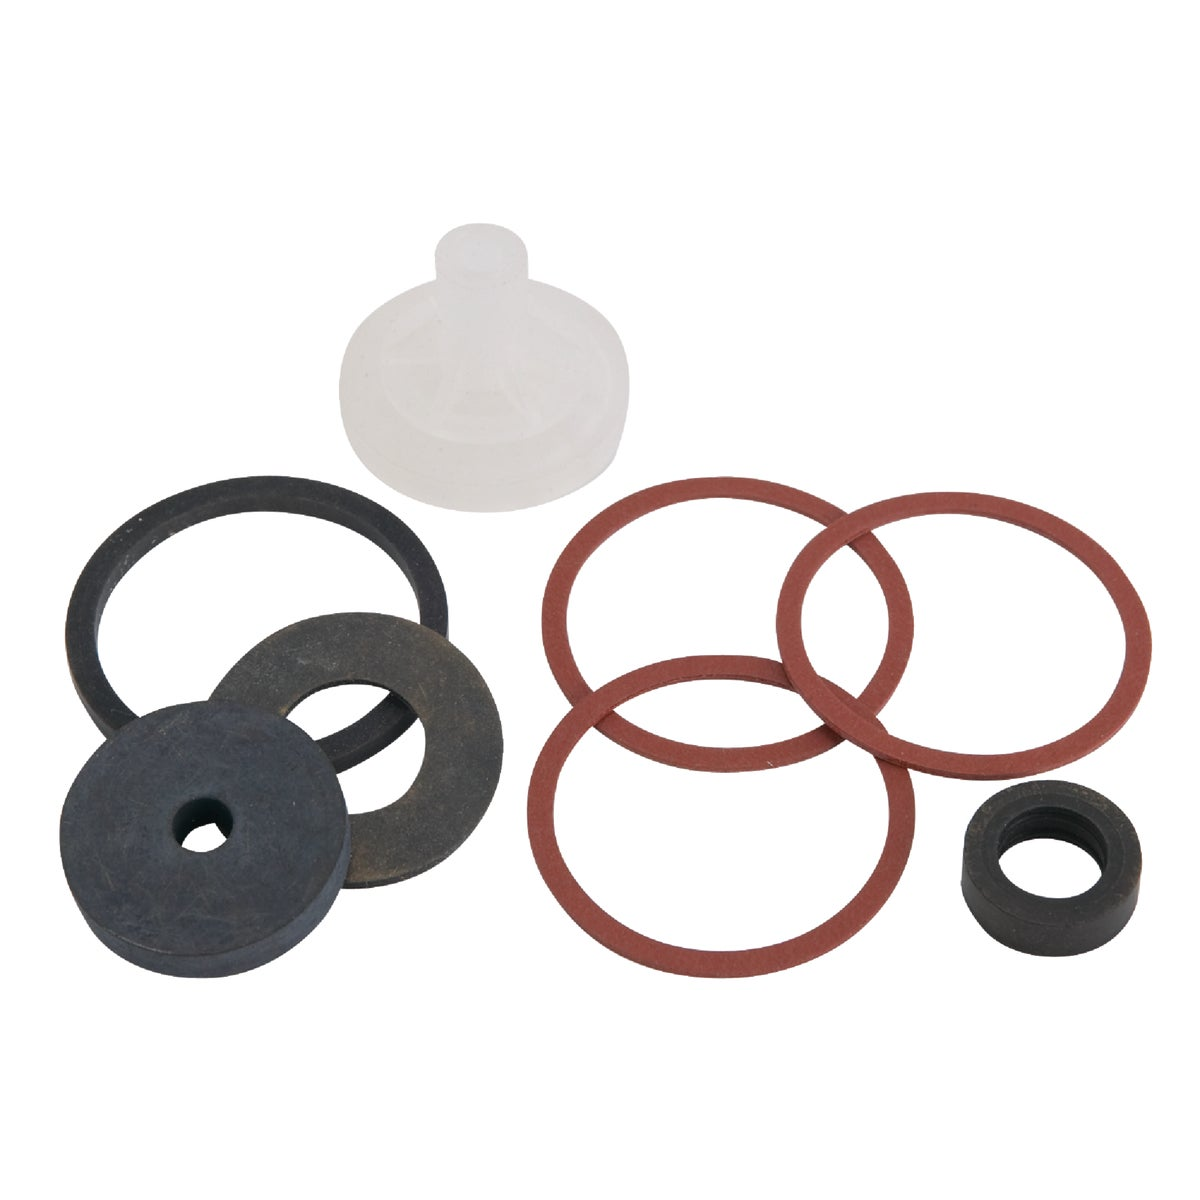 "1"" VALVE REBUILD KIT - RK31C by Champion Arrowhead"